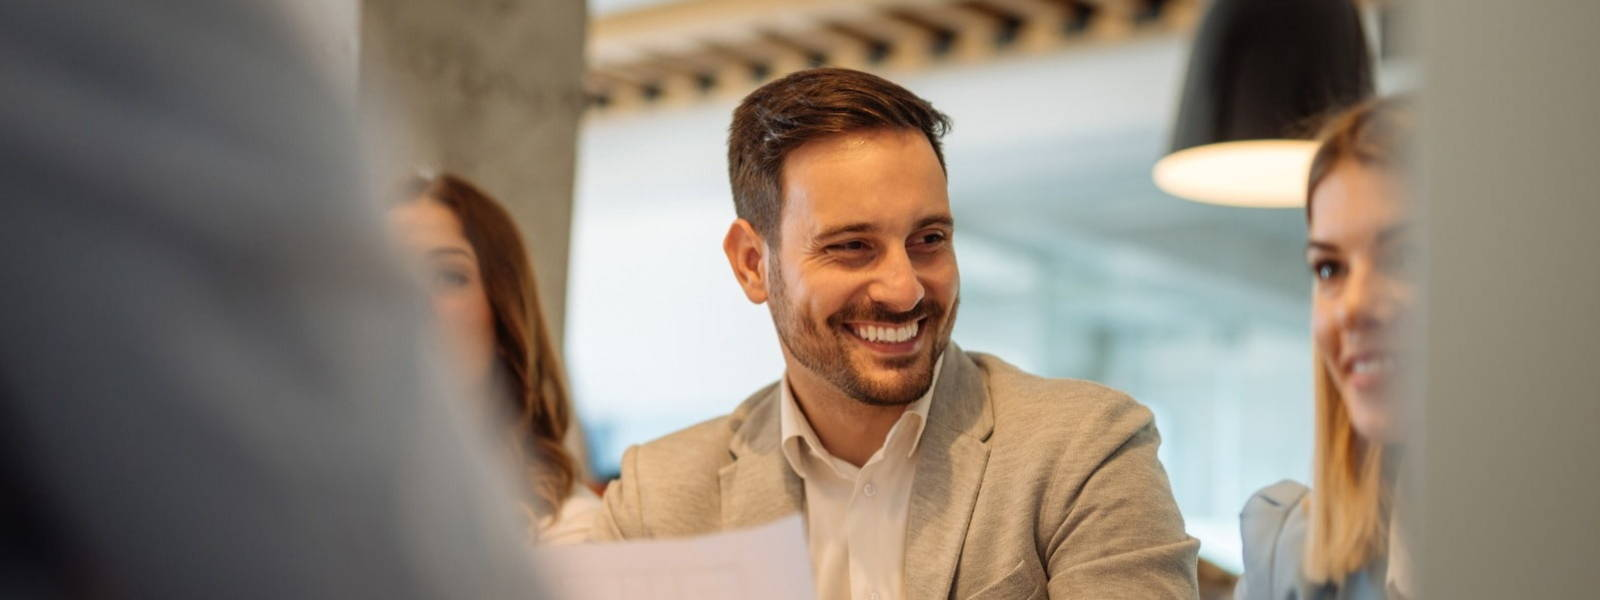 Man smiling in a meeting